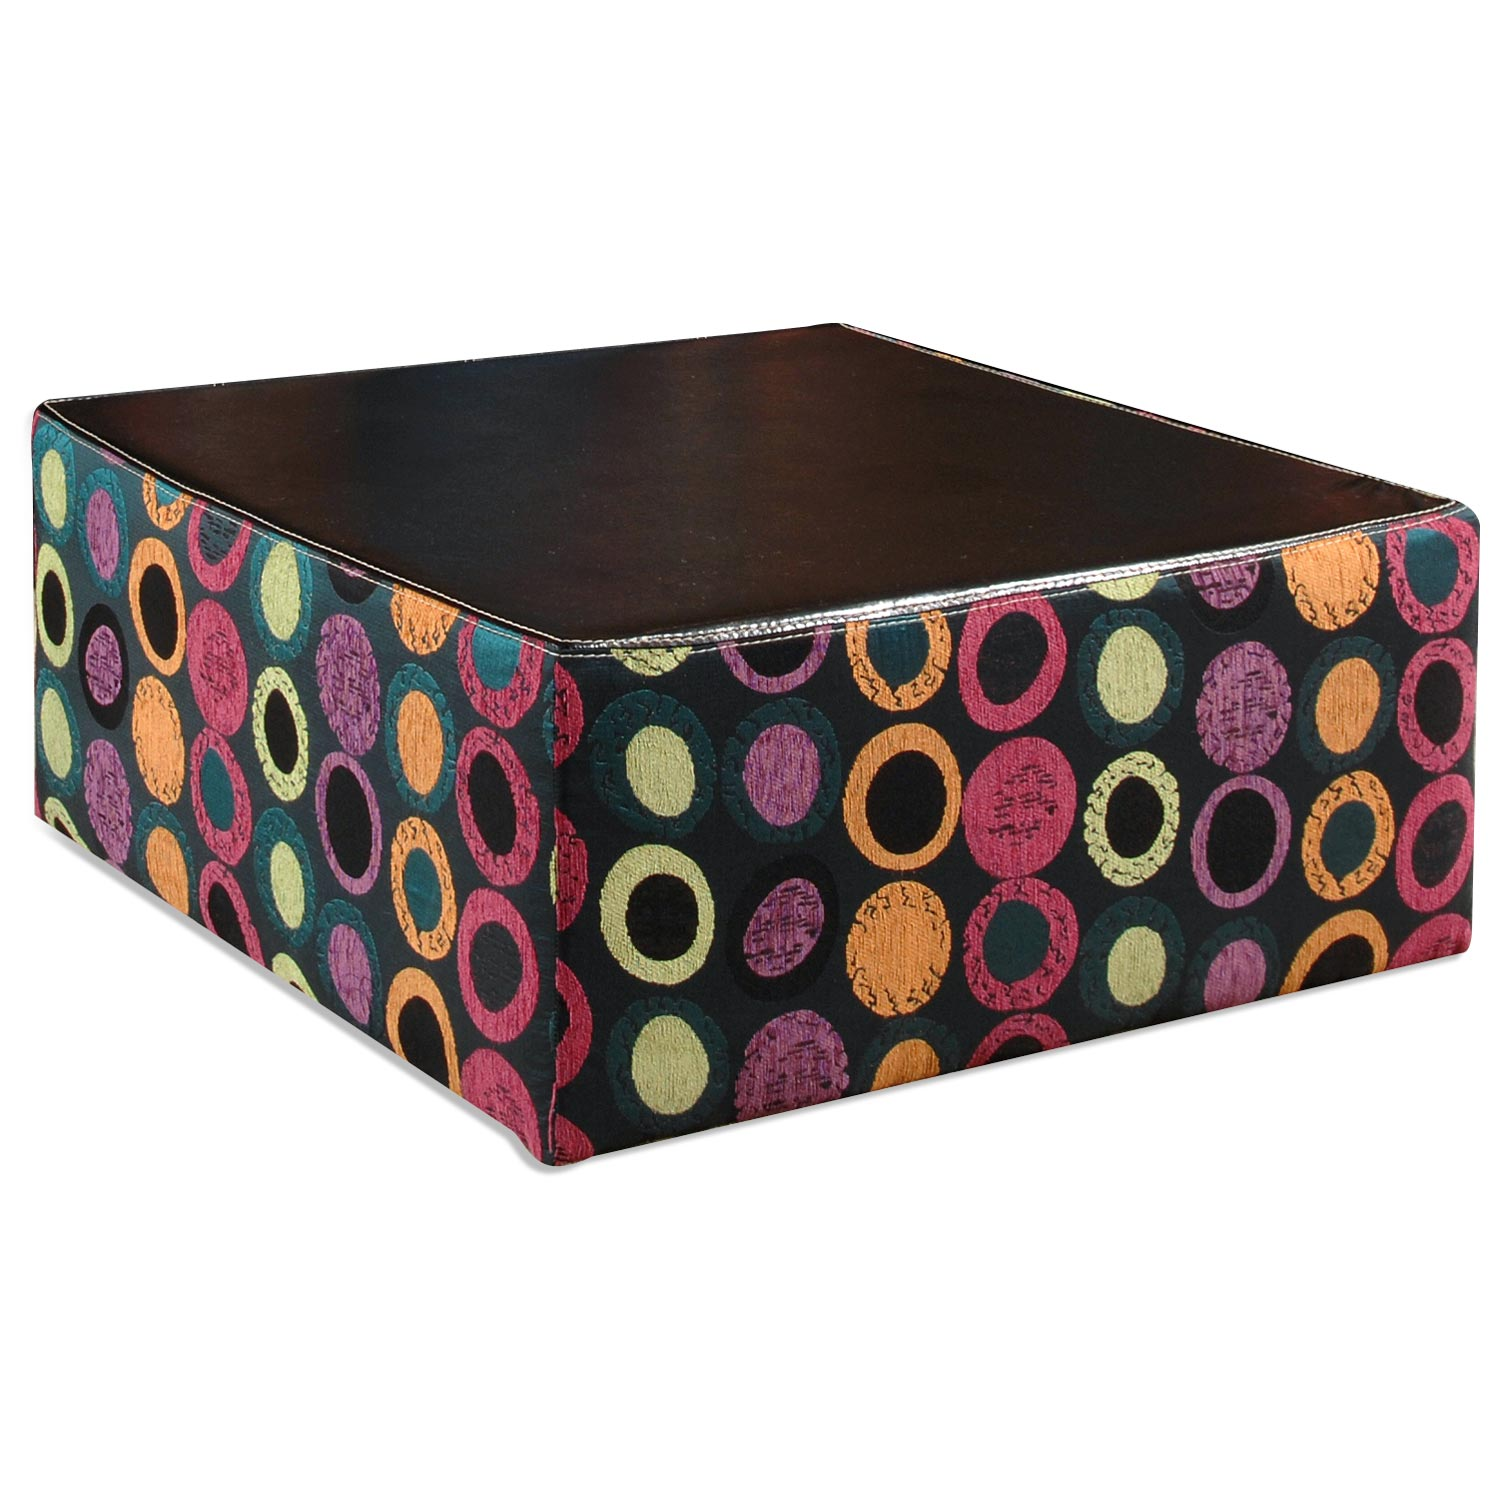 Lauren Upholstered Coffee Table - Multicolored Circles